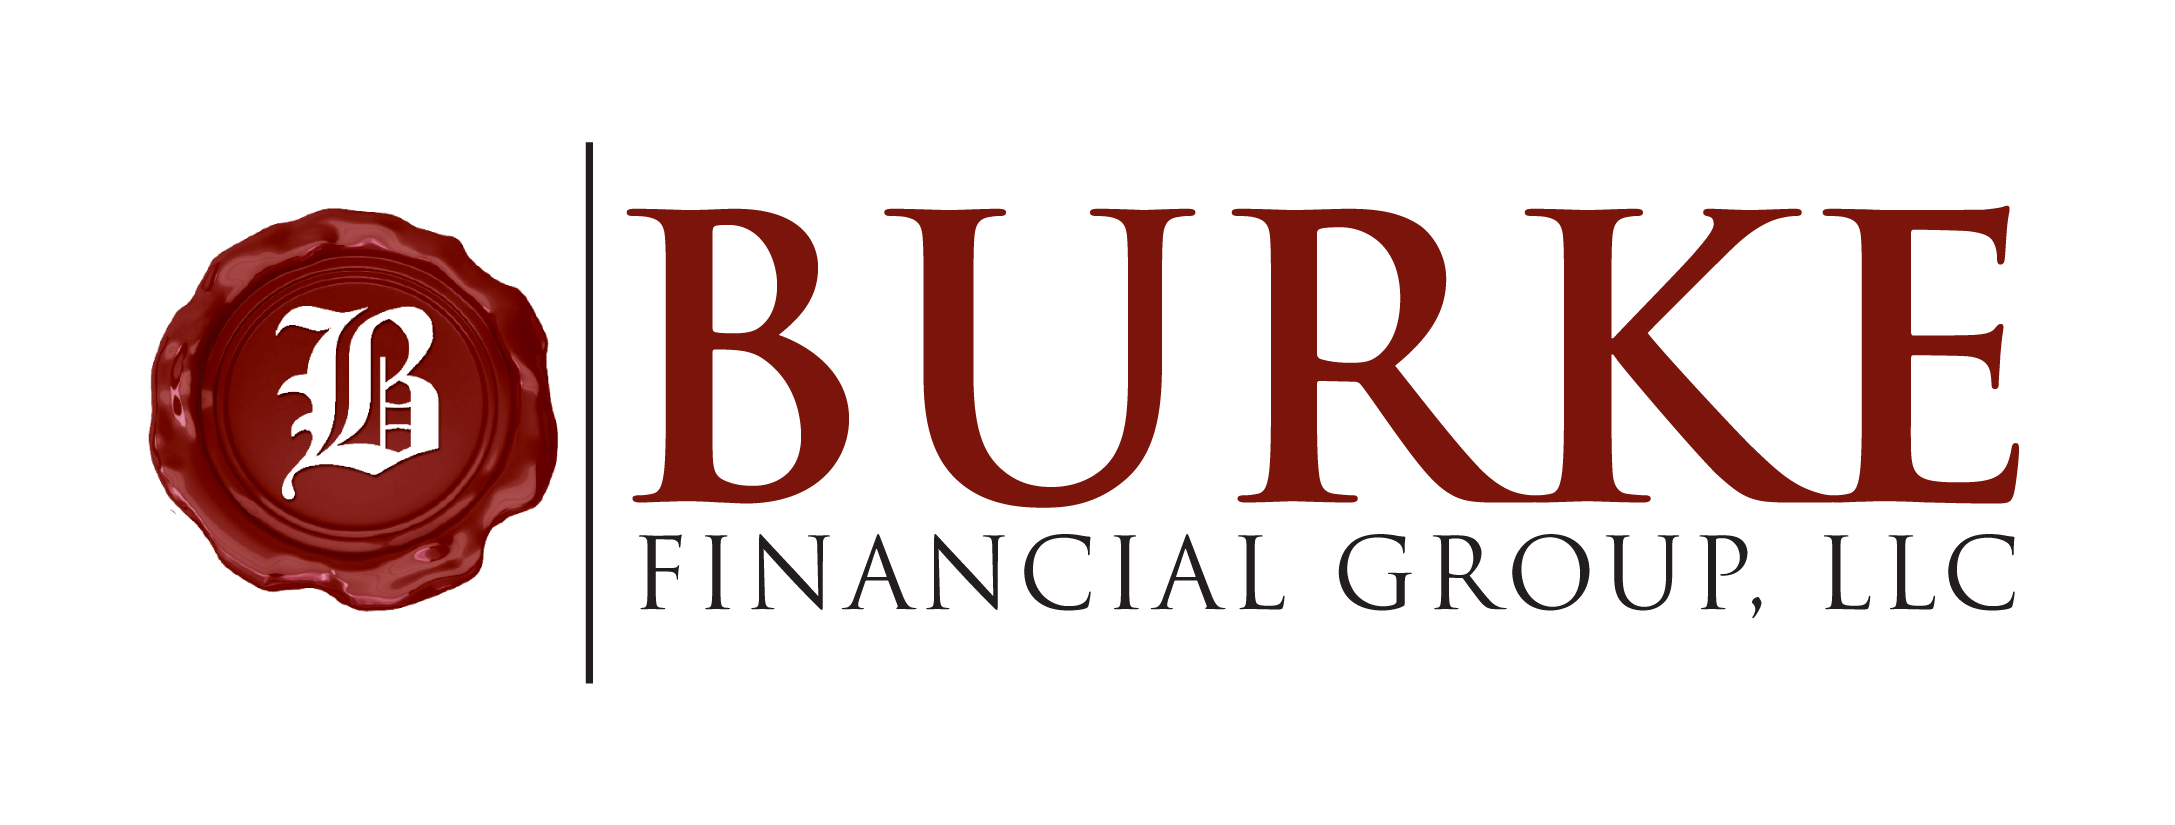 Burke Financial Group